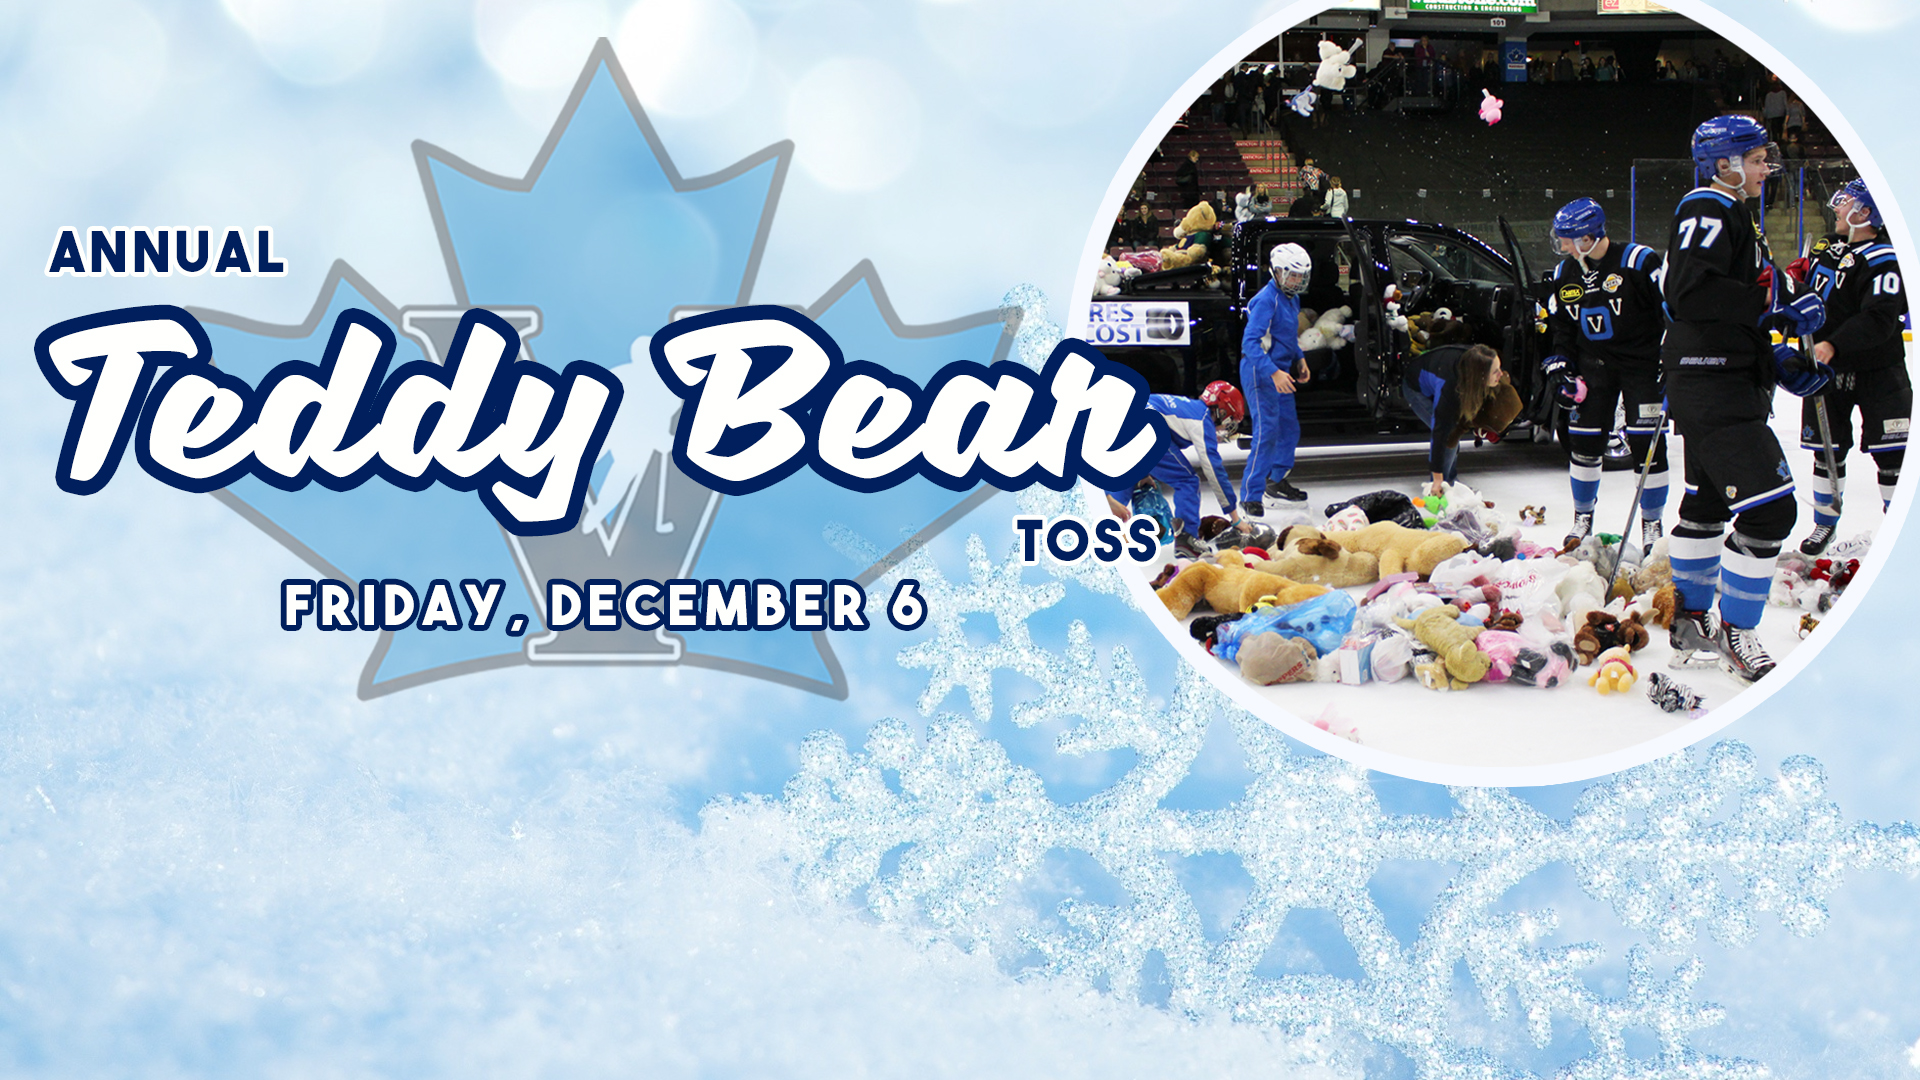 Vees Annual Teddy Bear Toss - Dan Jones